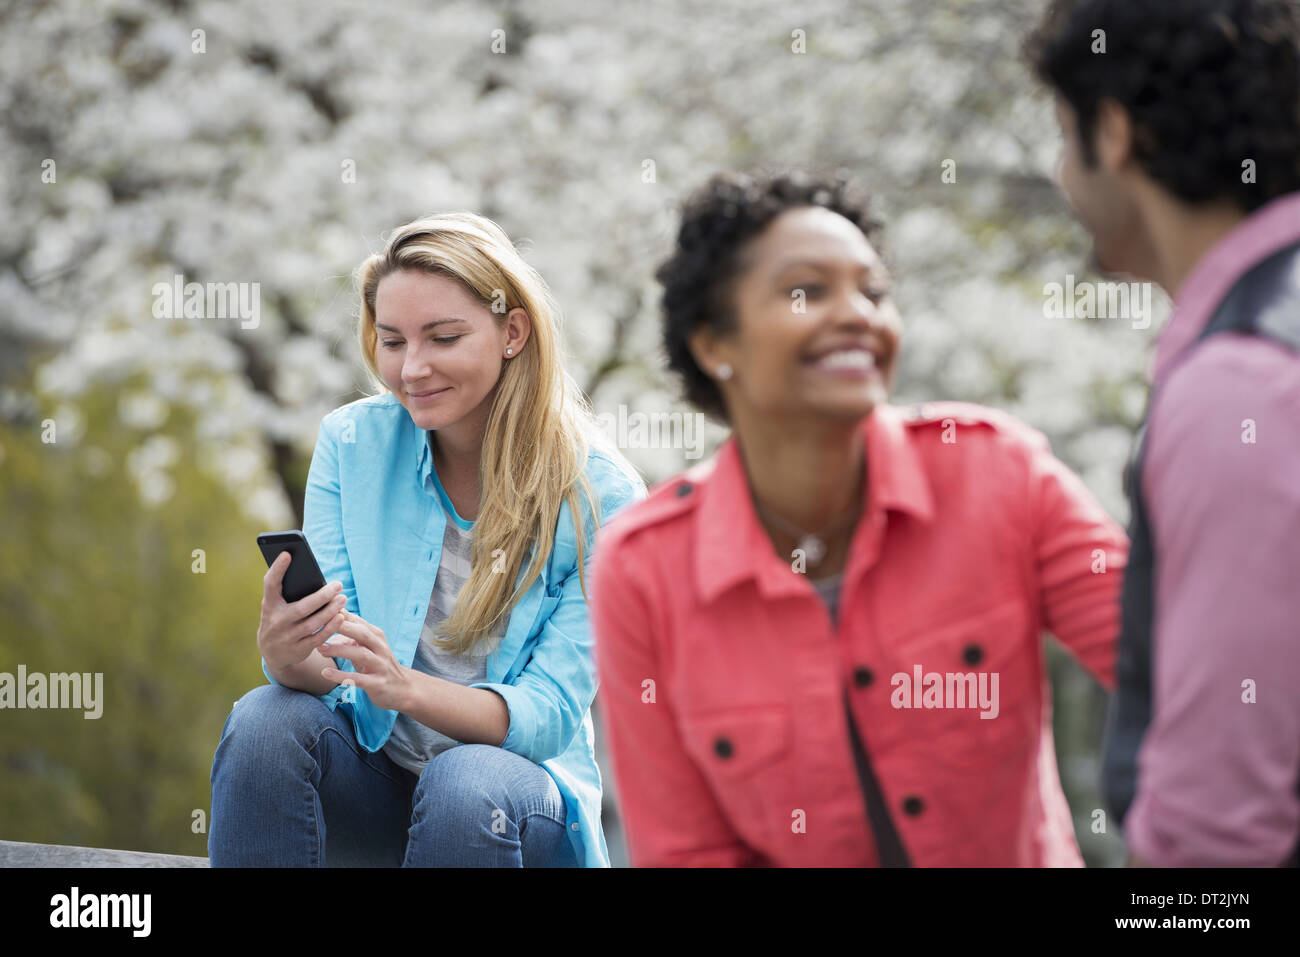 Spring time New York City park White blossom on the trees A woman sitting on bench holding her mobile phone A couple beside her - Stock Image